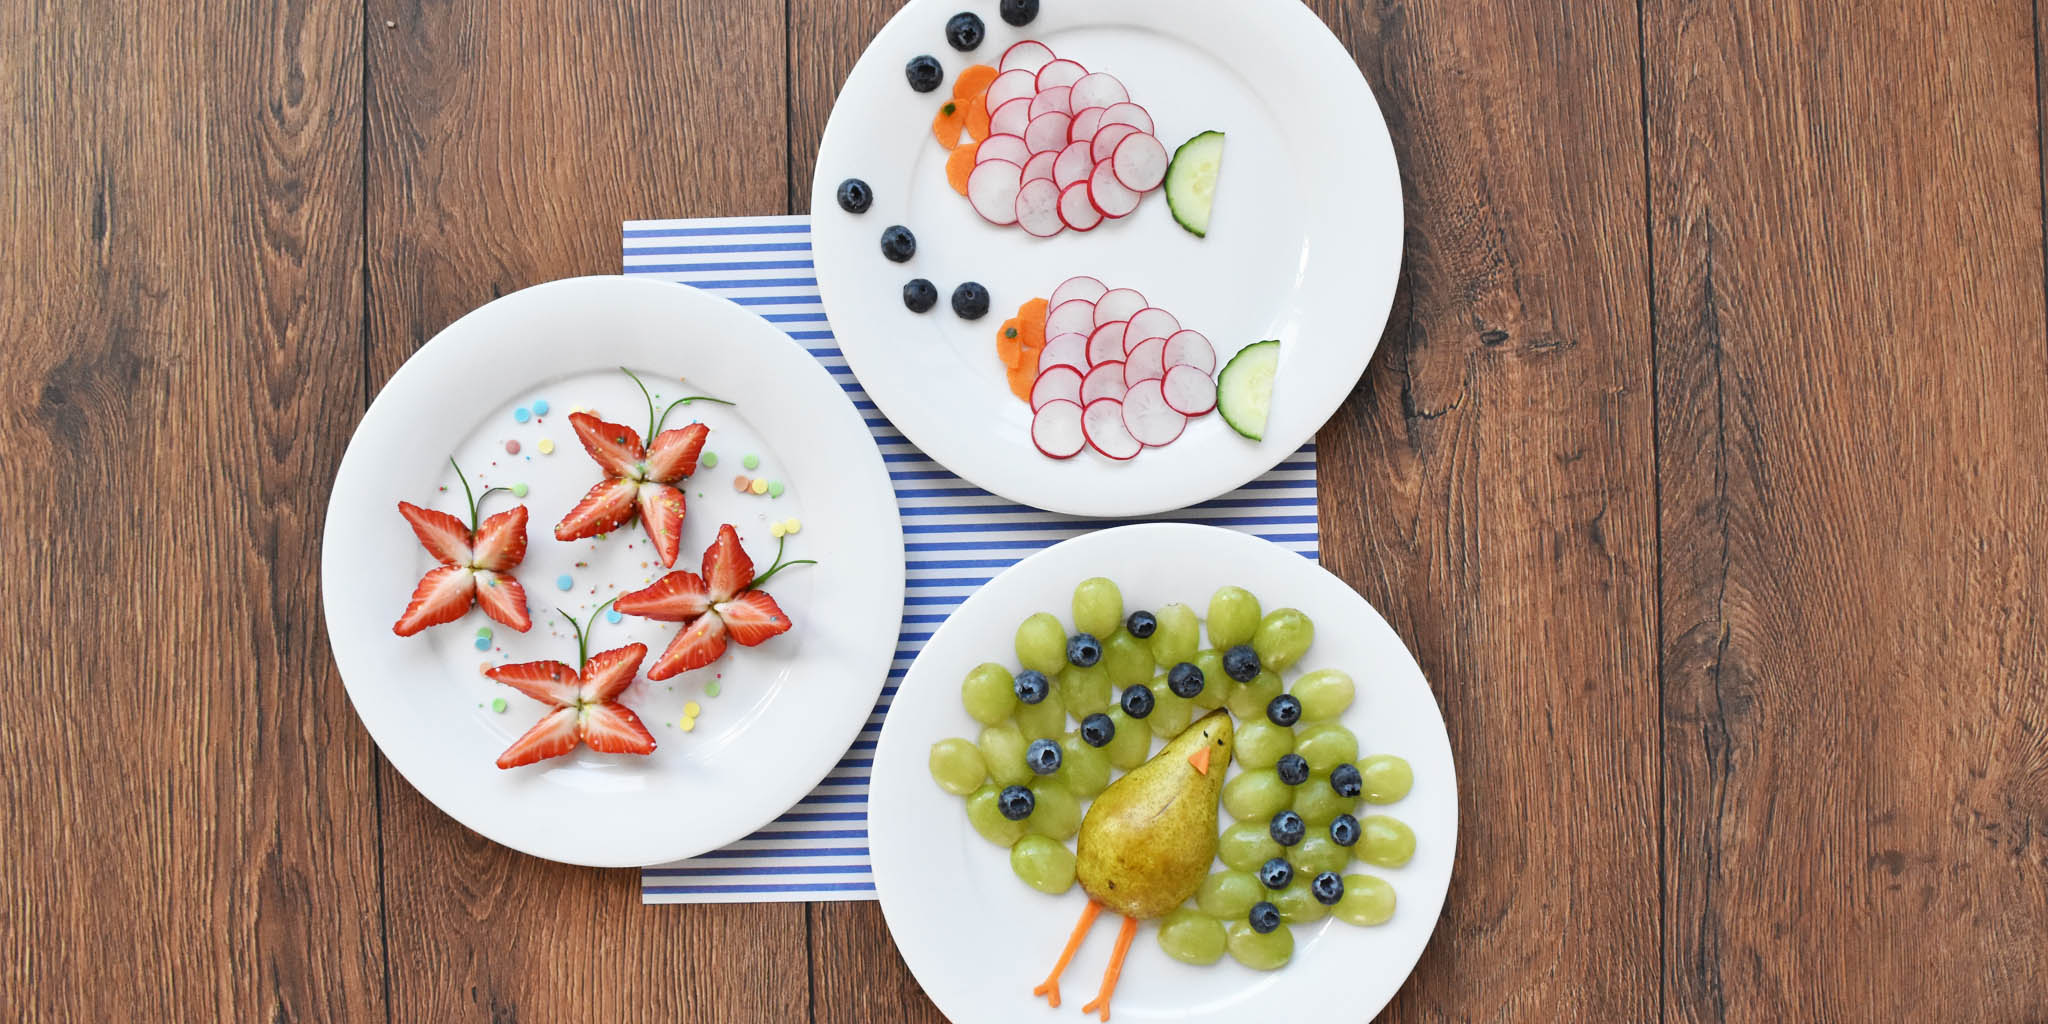 How to make eating fruits and vegetables fun!